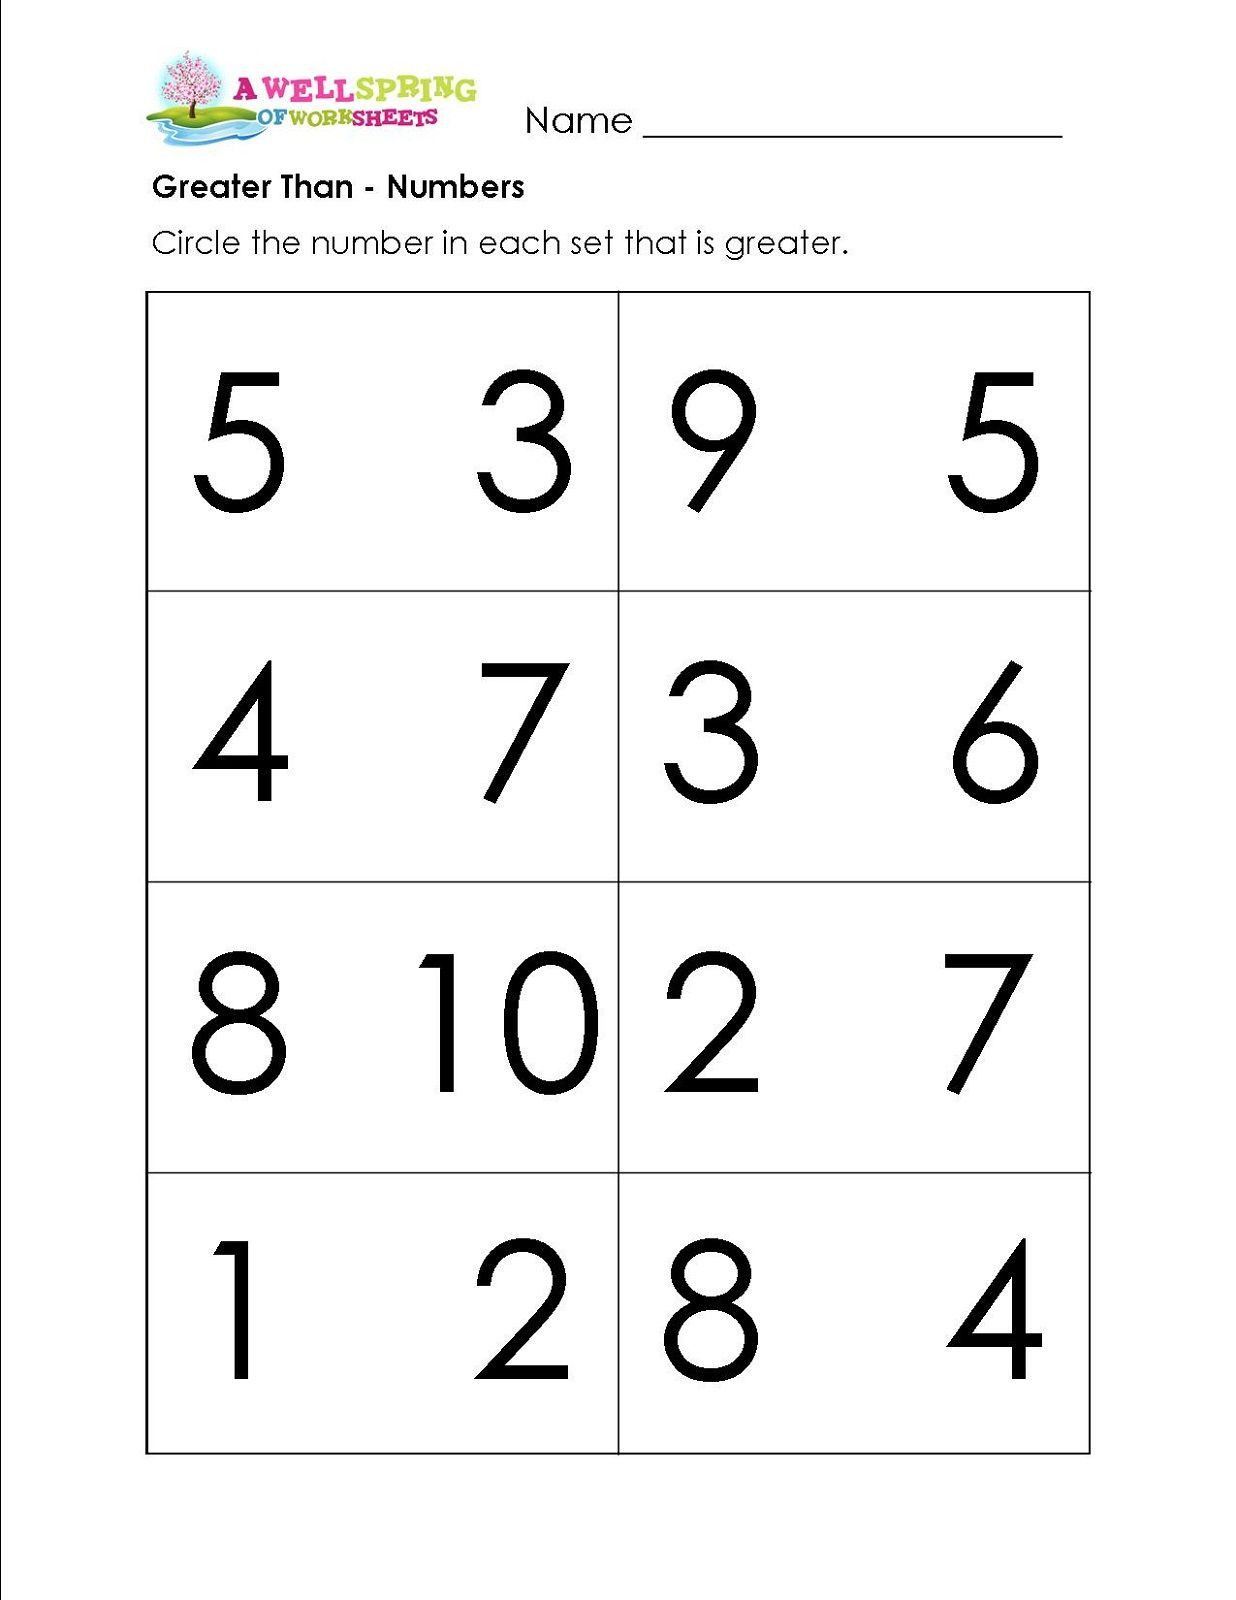 3 Big Or Small Worksheet For Kids More Or Less Worksheets For Kids Kids Math Worksheets Learning Worksheets Math Worksheets